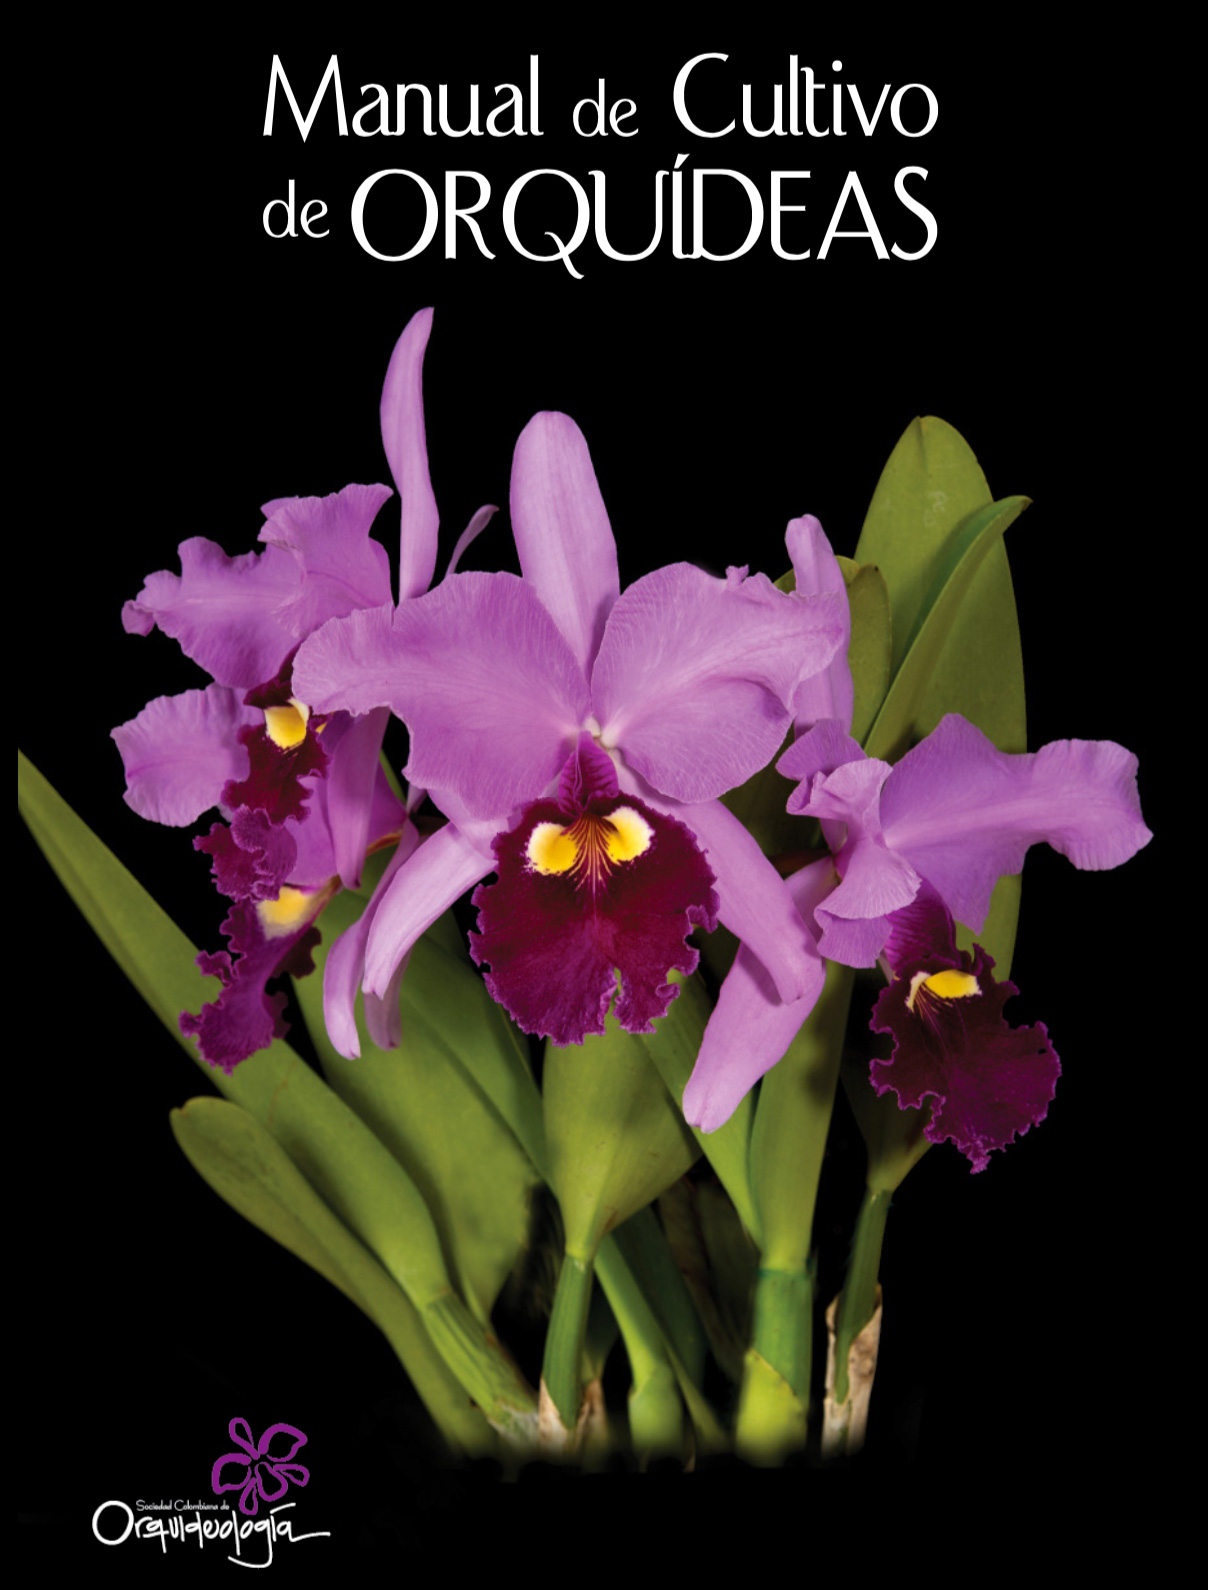 Manual de Cultivo de Orquídeas 2018